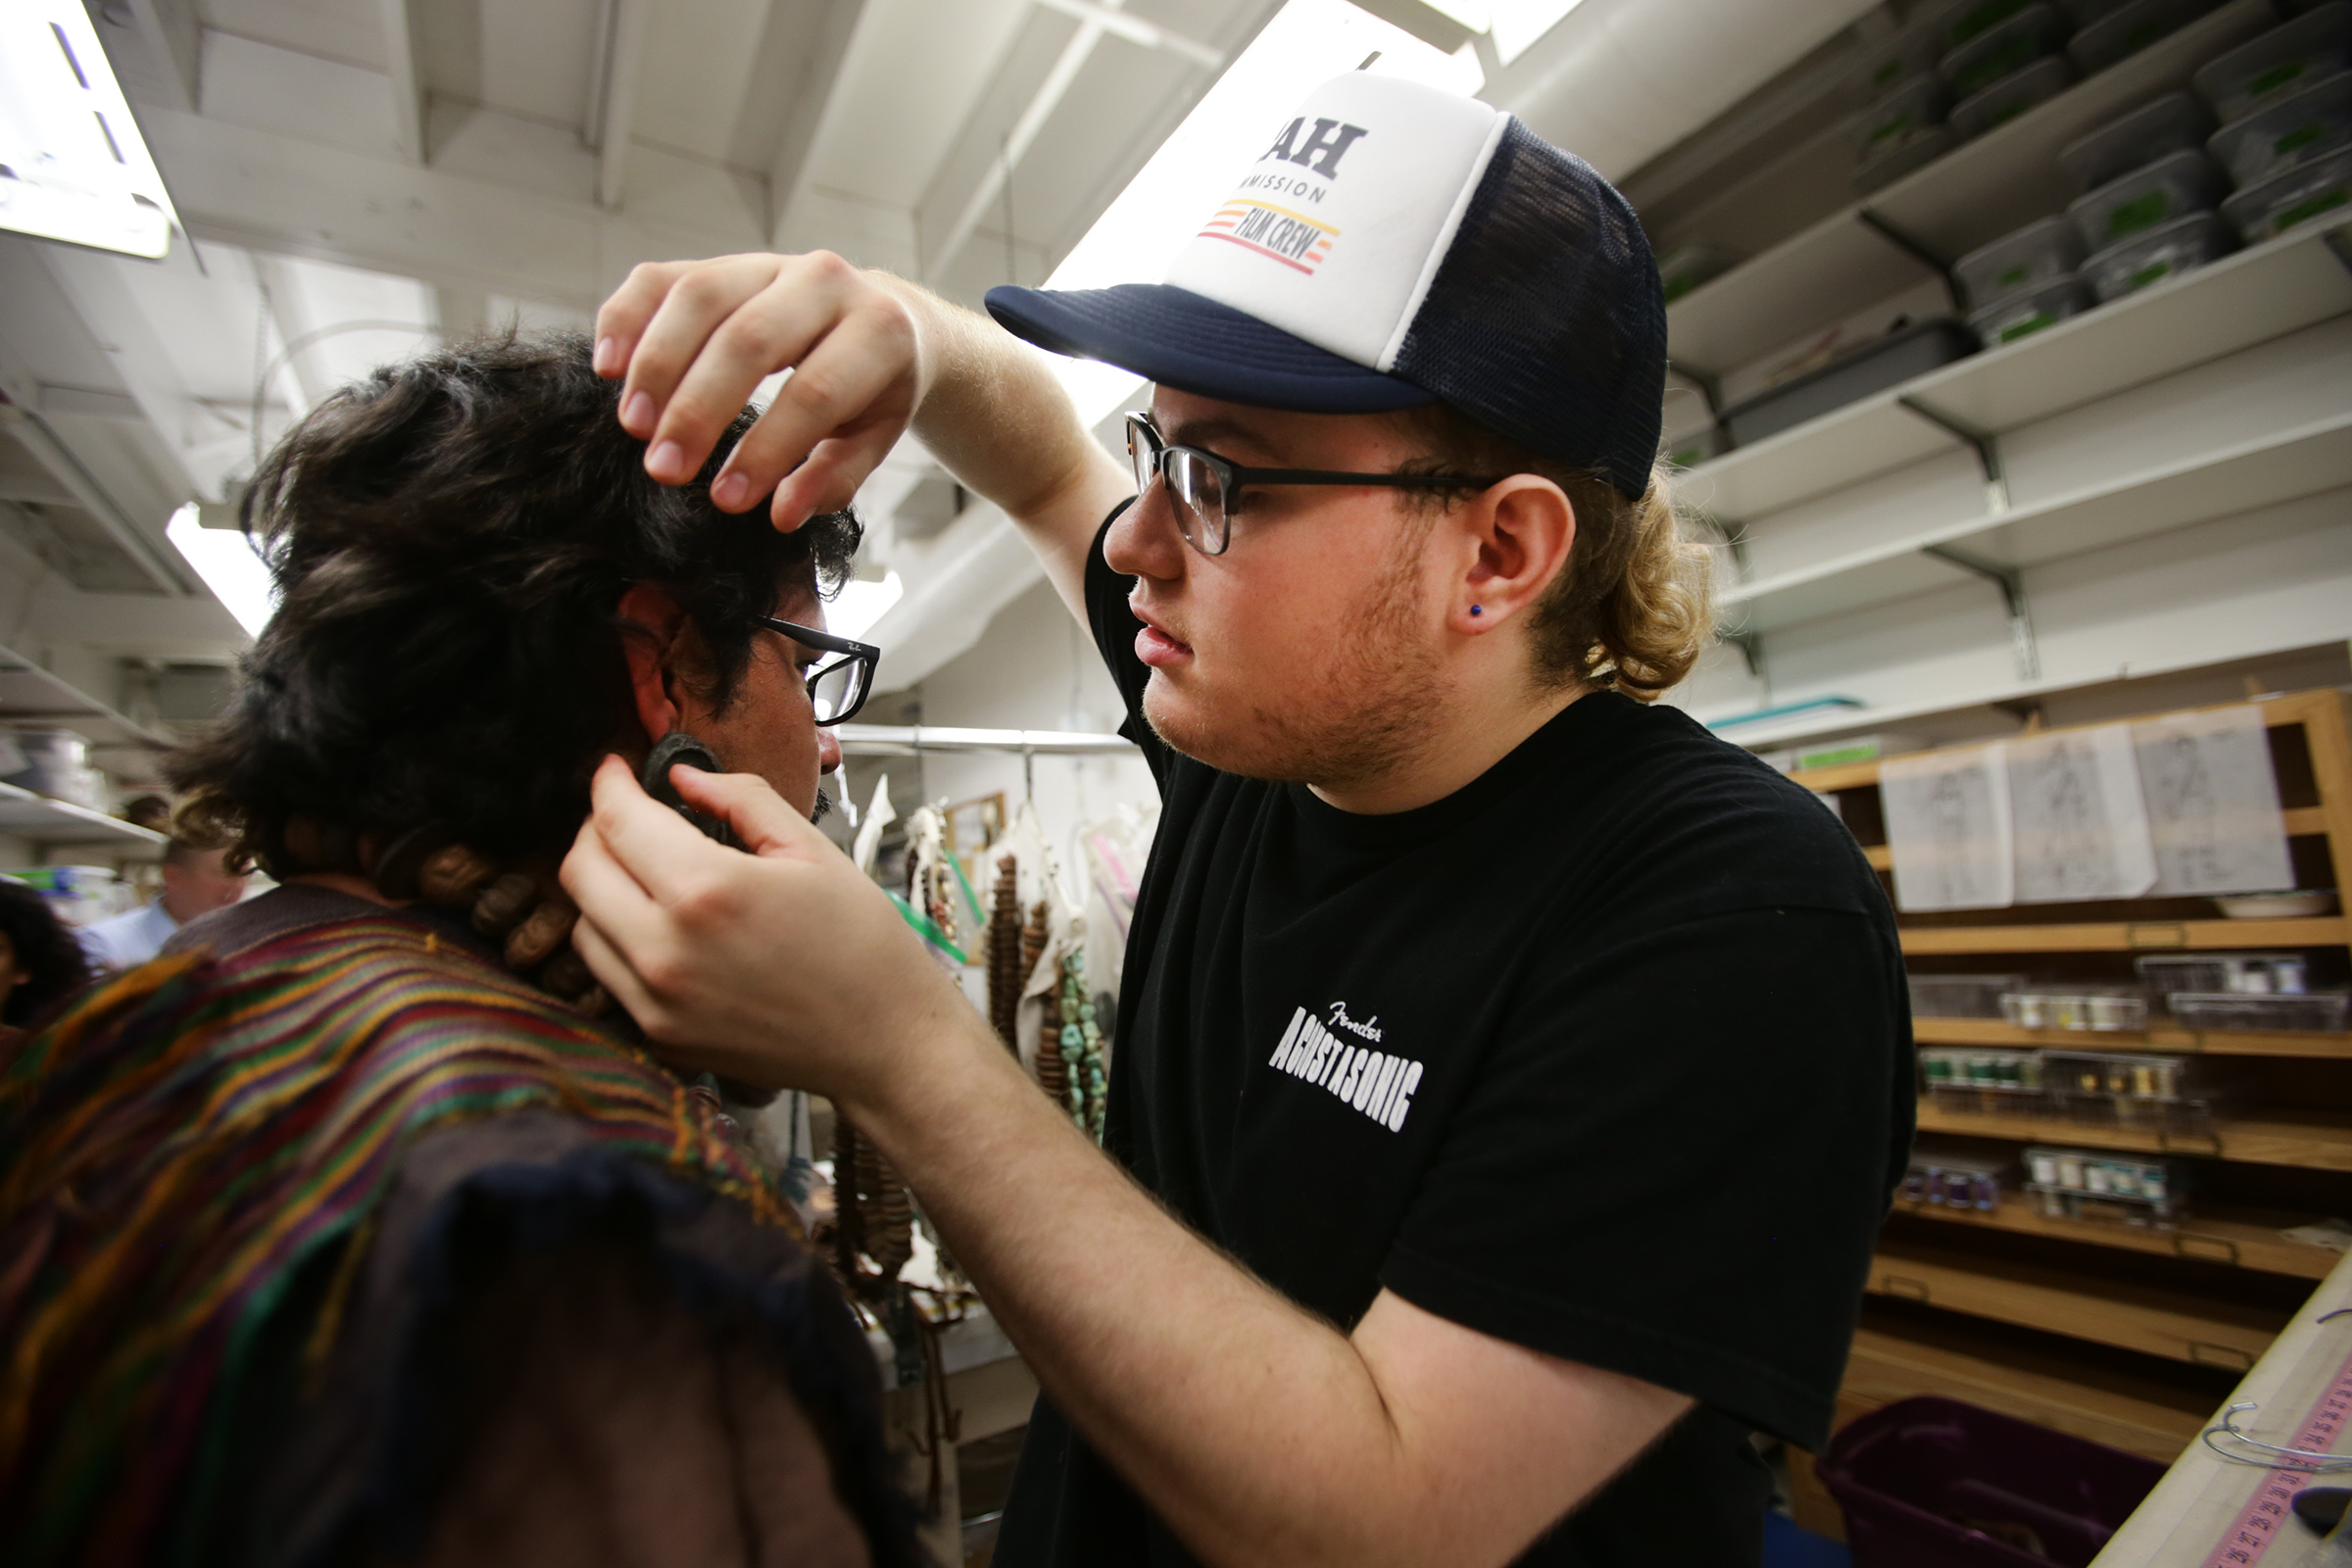 Ivan Amezquita gets ear-rings from Mason Creer in the costume room as work on production of the Book of Mormon videos continues in Provo, Utah, at the Motion Picture Studio on Tuesday, Sept. 3, 2019.